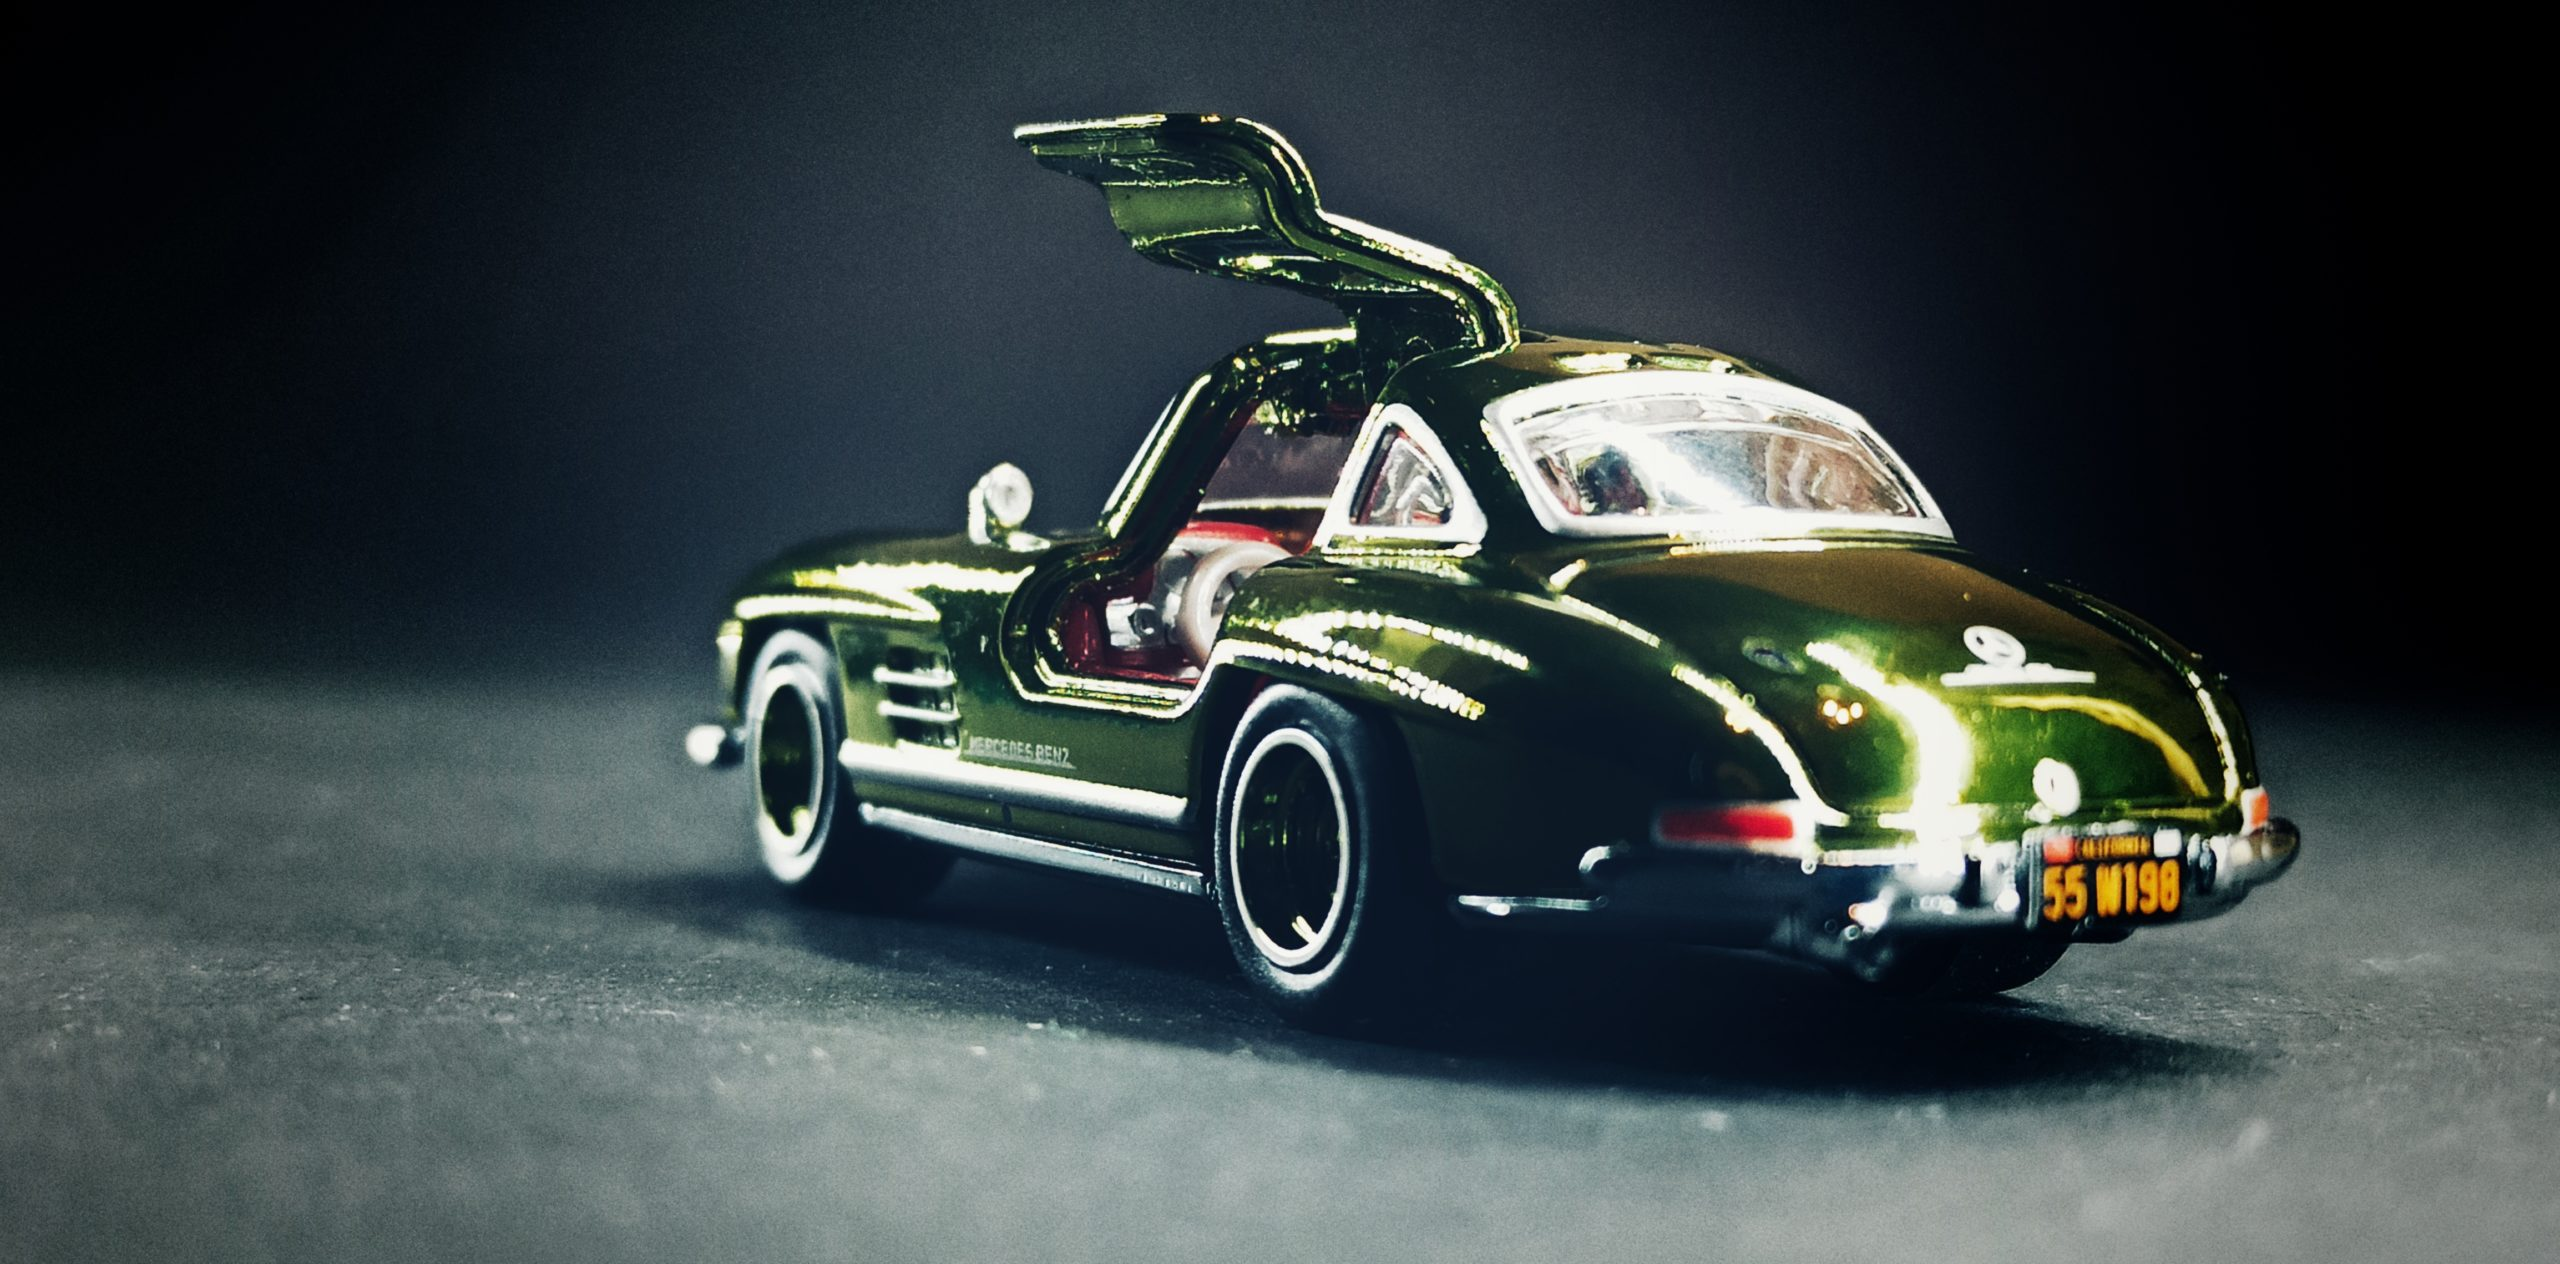 Hot Wheels '55 Mercedes-Benz 300 SL (GDF83) 2019 RLC Exclusive (1 of 12.500) spectraflame green back angle